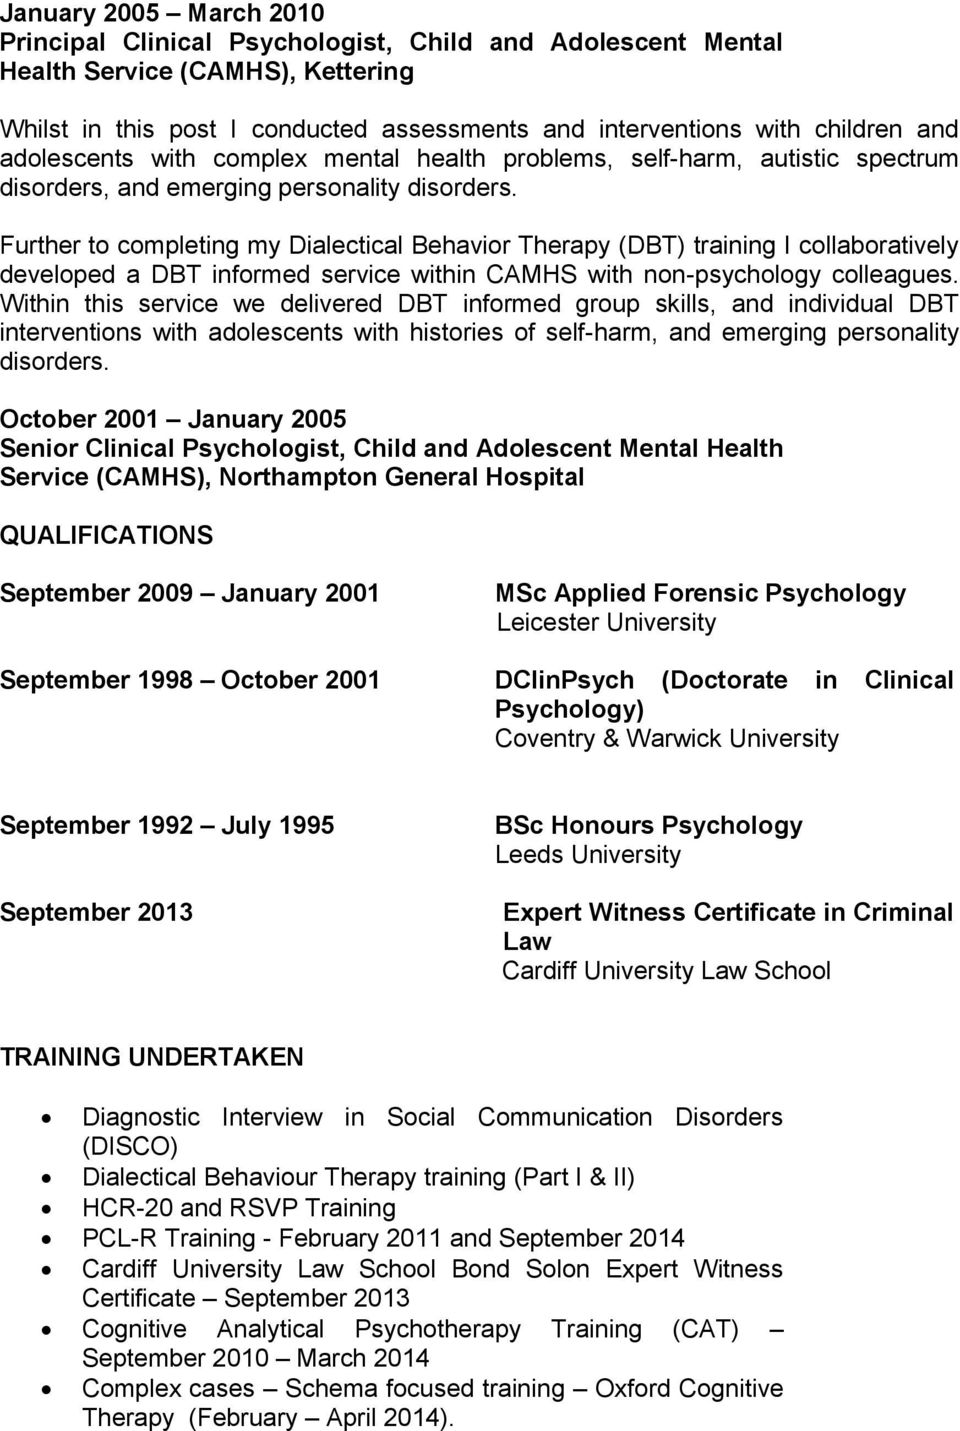 Further to completing my Dialectical Behavior Therapy (DBT) training I collaboratively developed a DBT informed service within CAMHS with non-psychology colleagues.